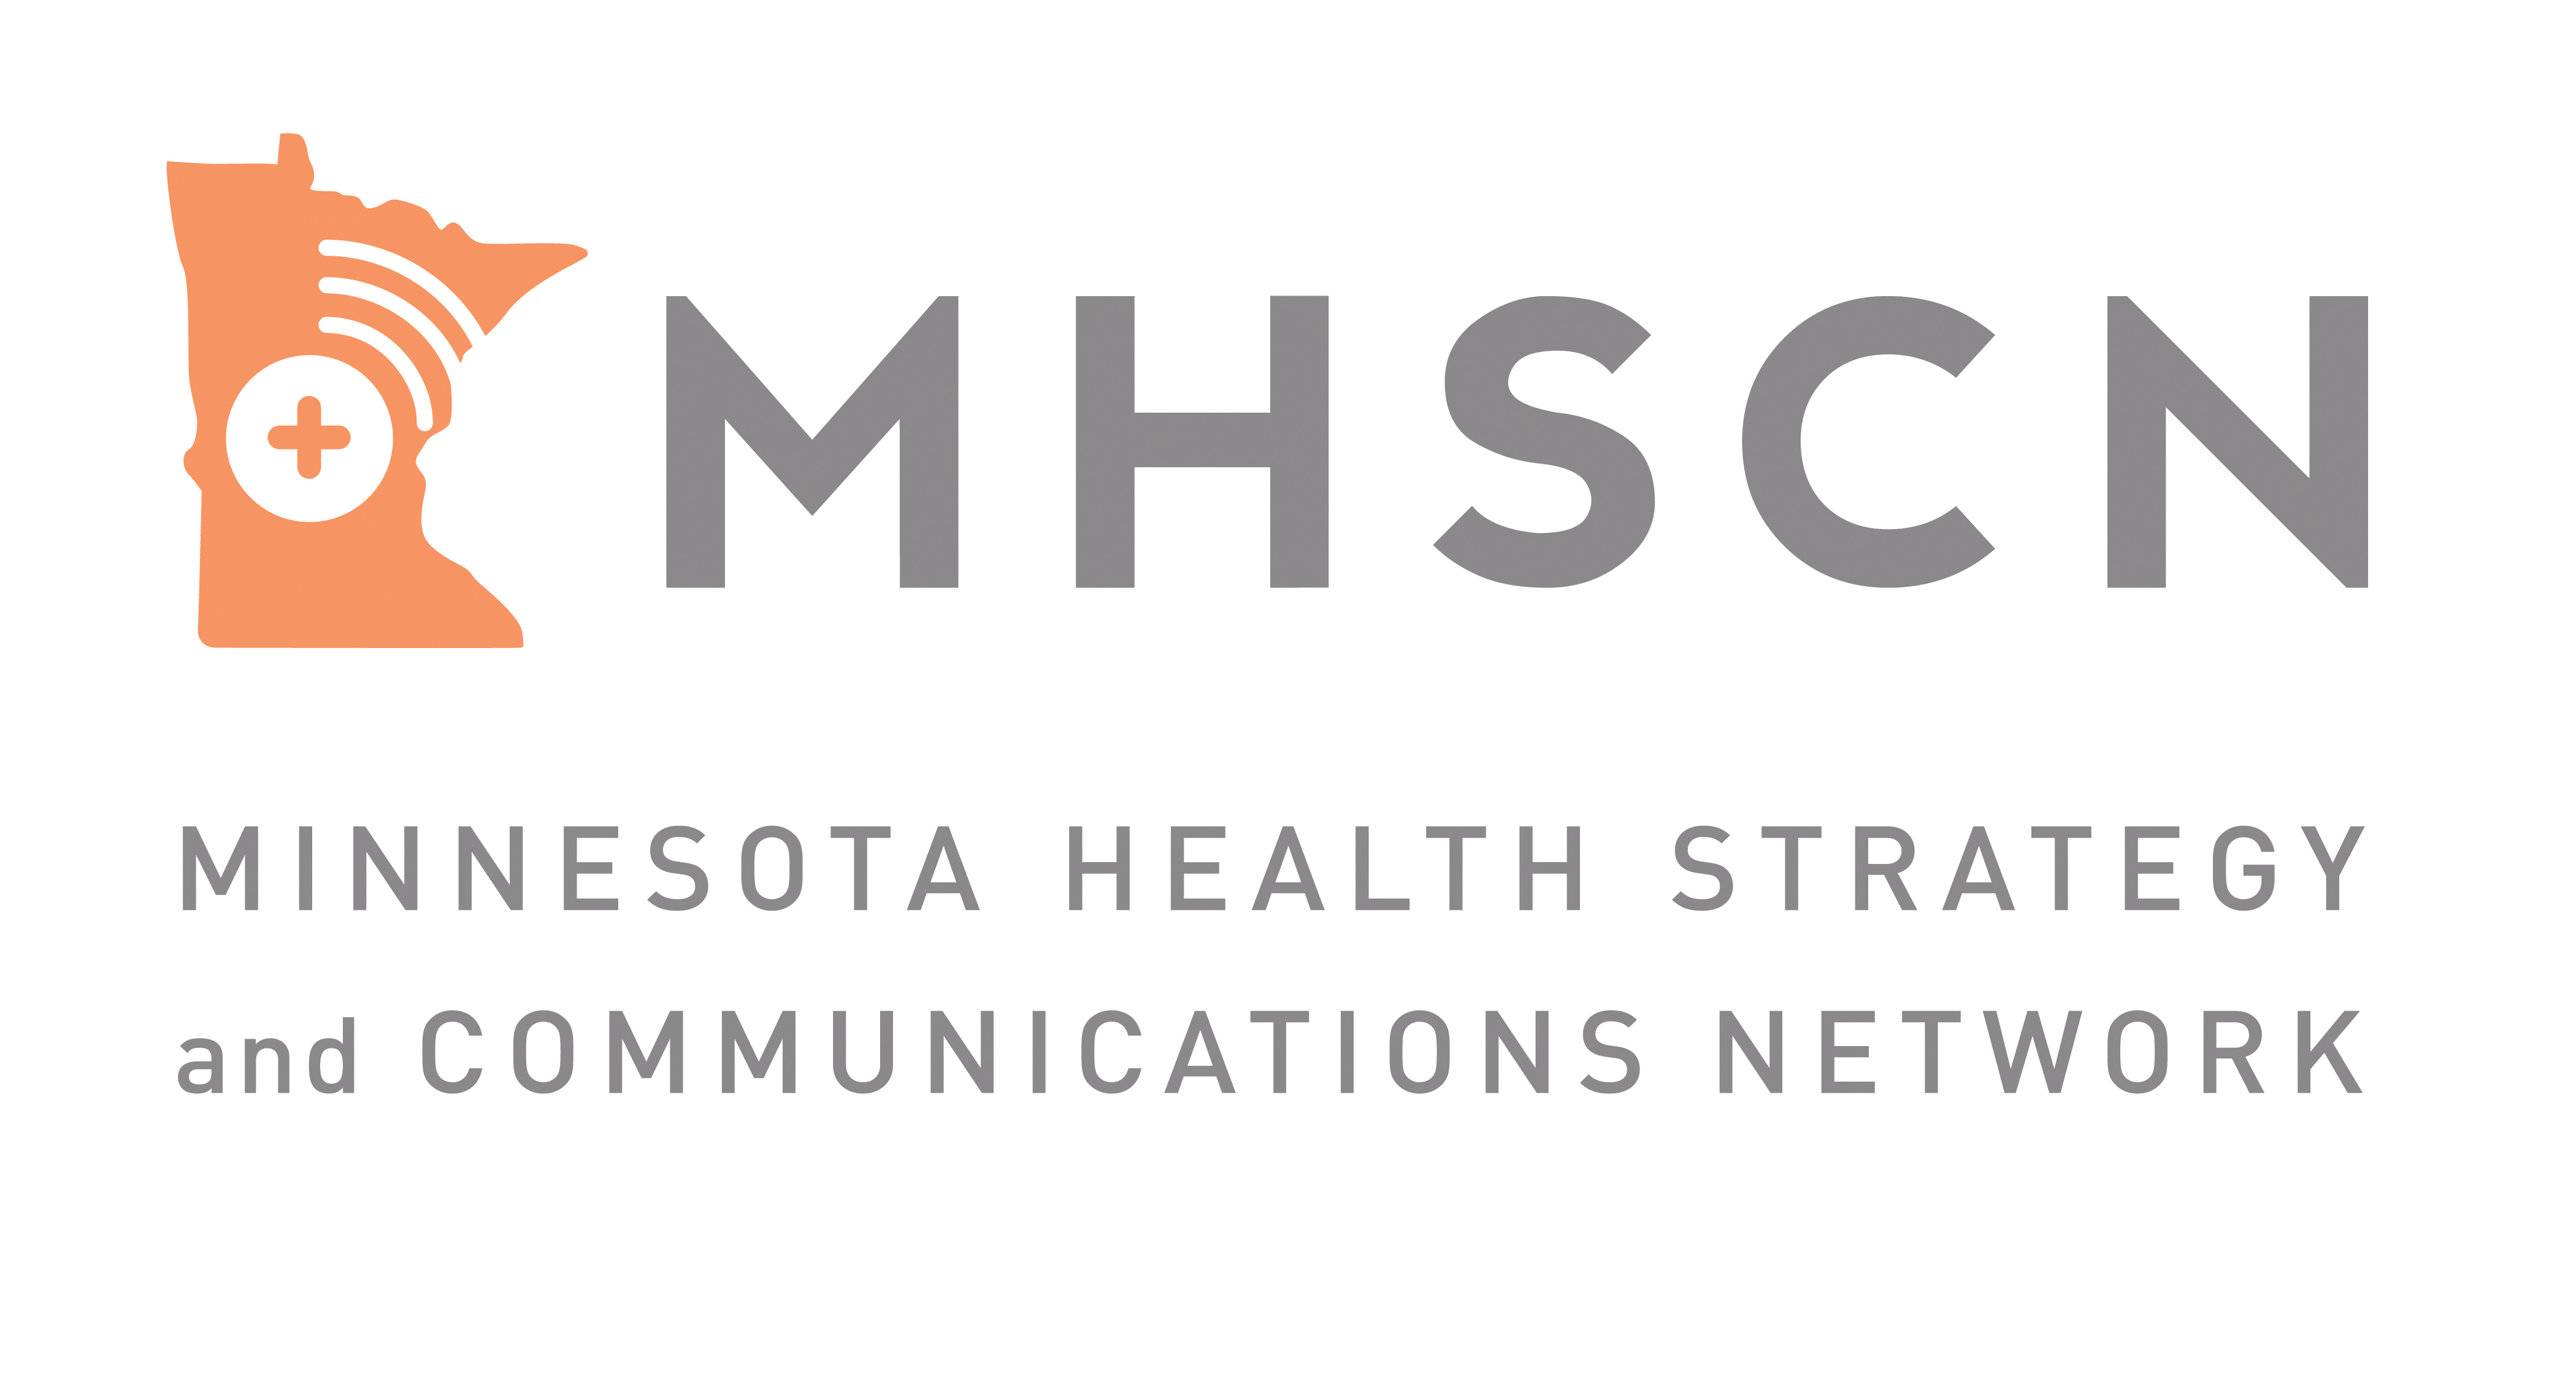 MHSCN Minnesota Health Strategy and Communications Network